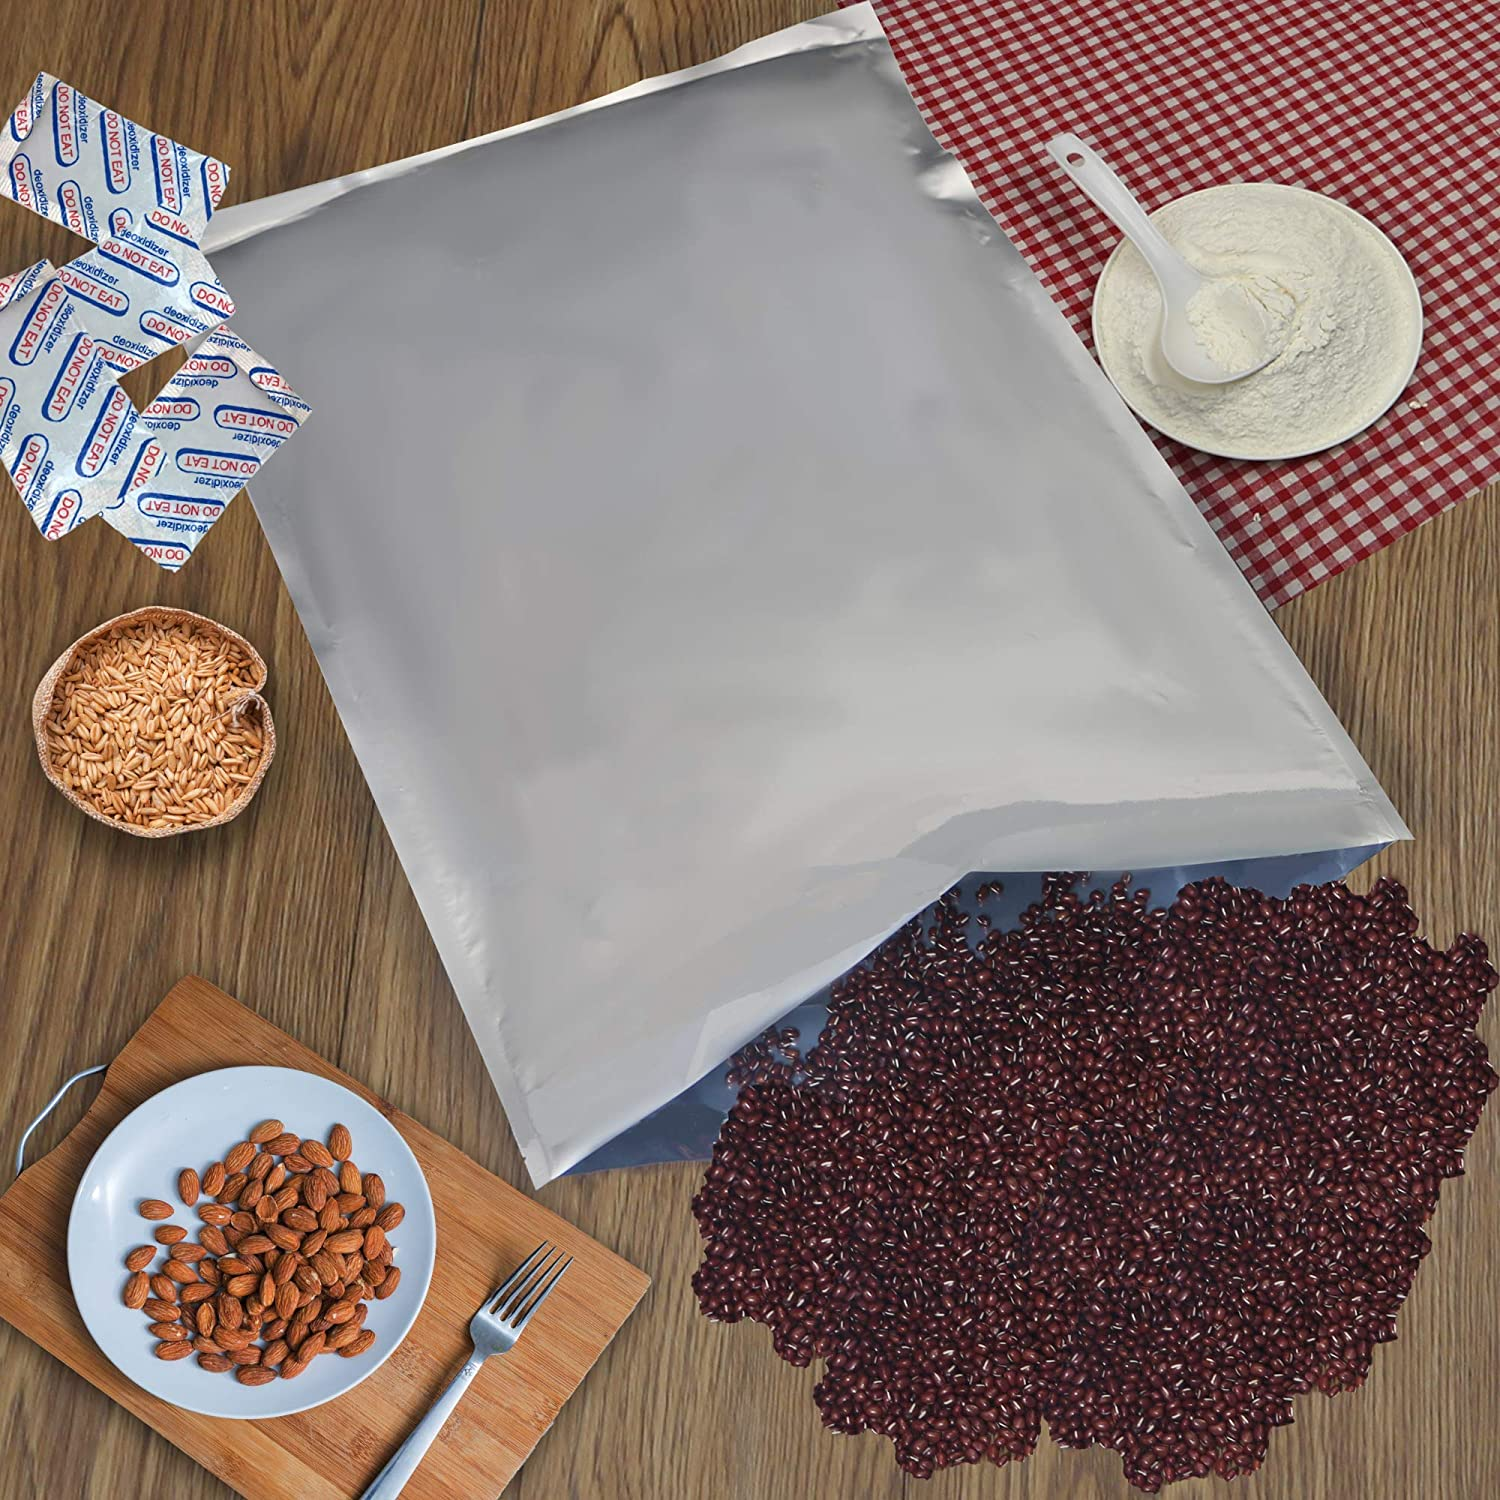 Absorb King 20 Pc, 5 GALLON MYLAR BAGS without ziplock 20